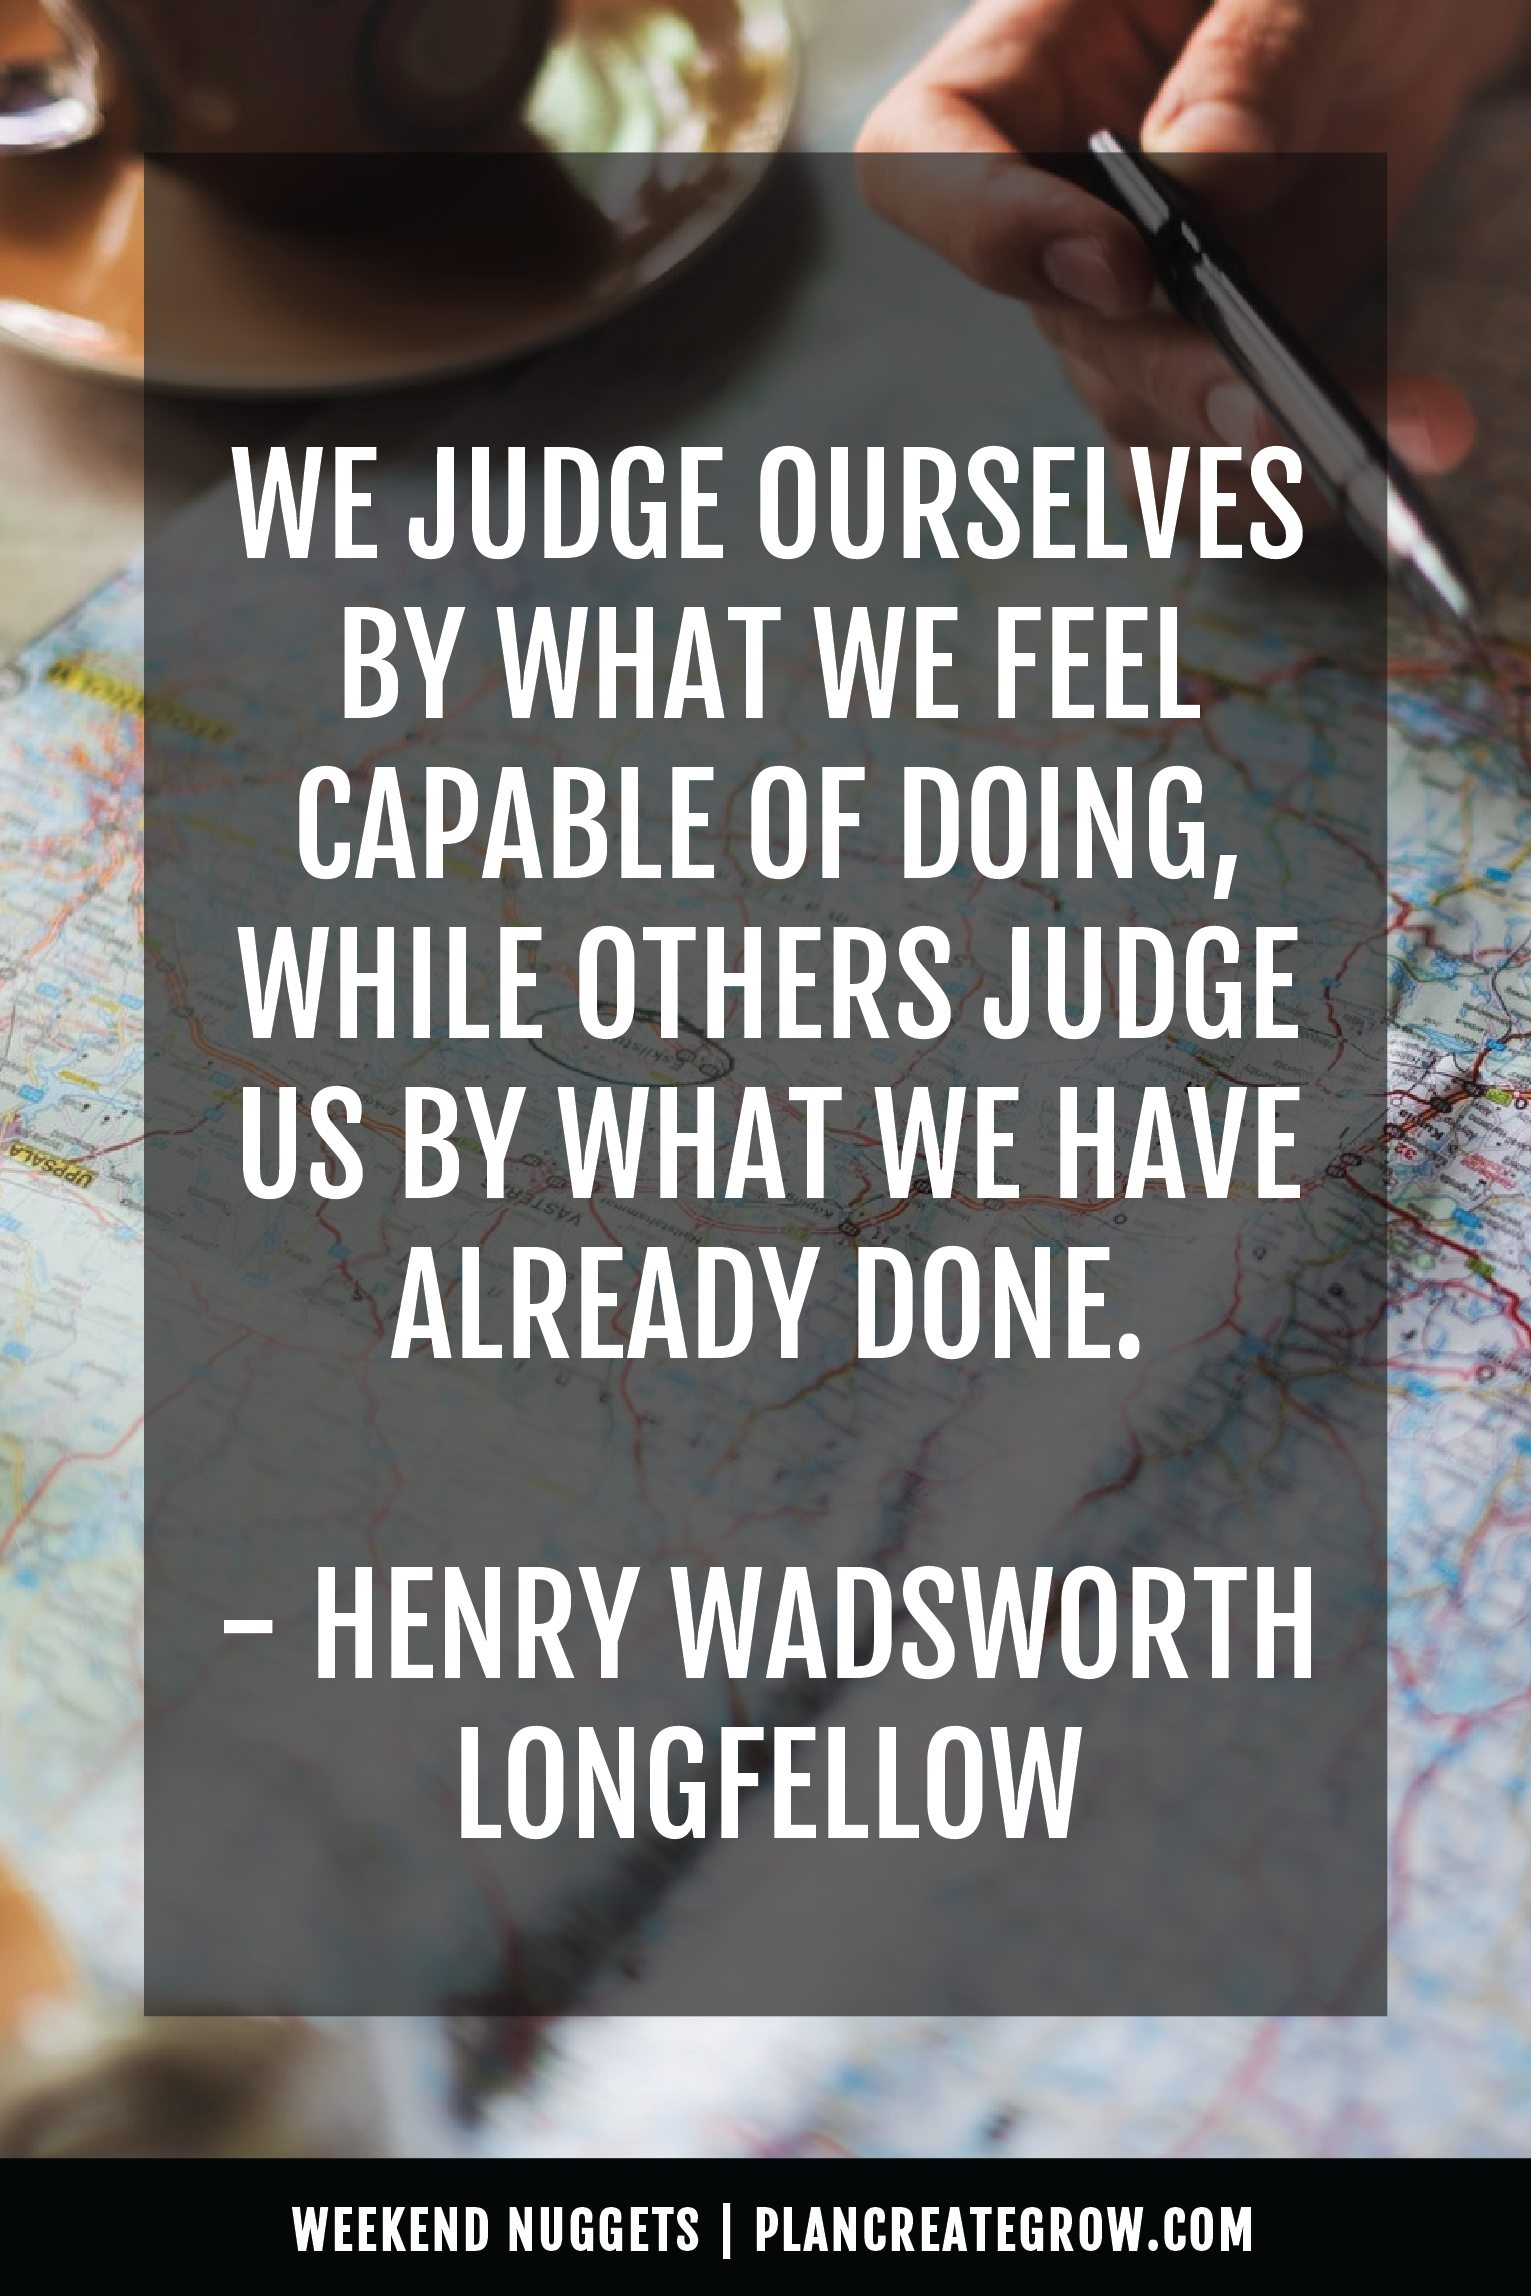 """""""We judge ourselves by what we feel capable of doing, while others judge us by what we have already done."""" - Henry Wadsworth Longfellow  This image forms part of a series called Weekend Nuggets - a collection of quotes and ideas curated to delight and inspire - shared each weekend. For more, visit plancreategrow.com/weekend-nuggets."""